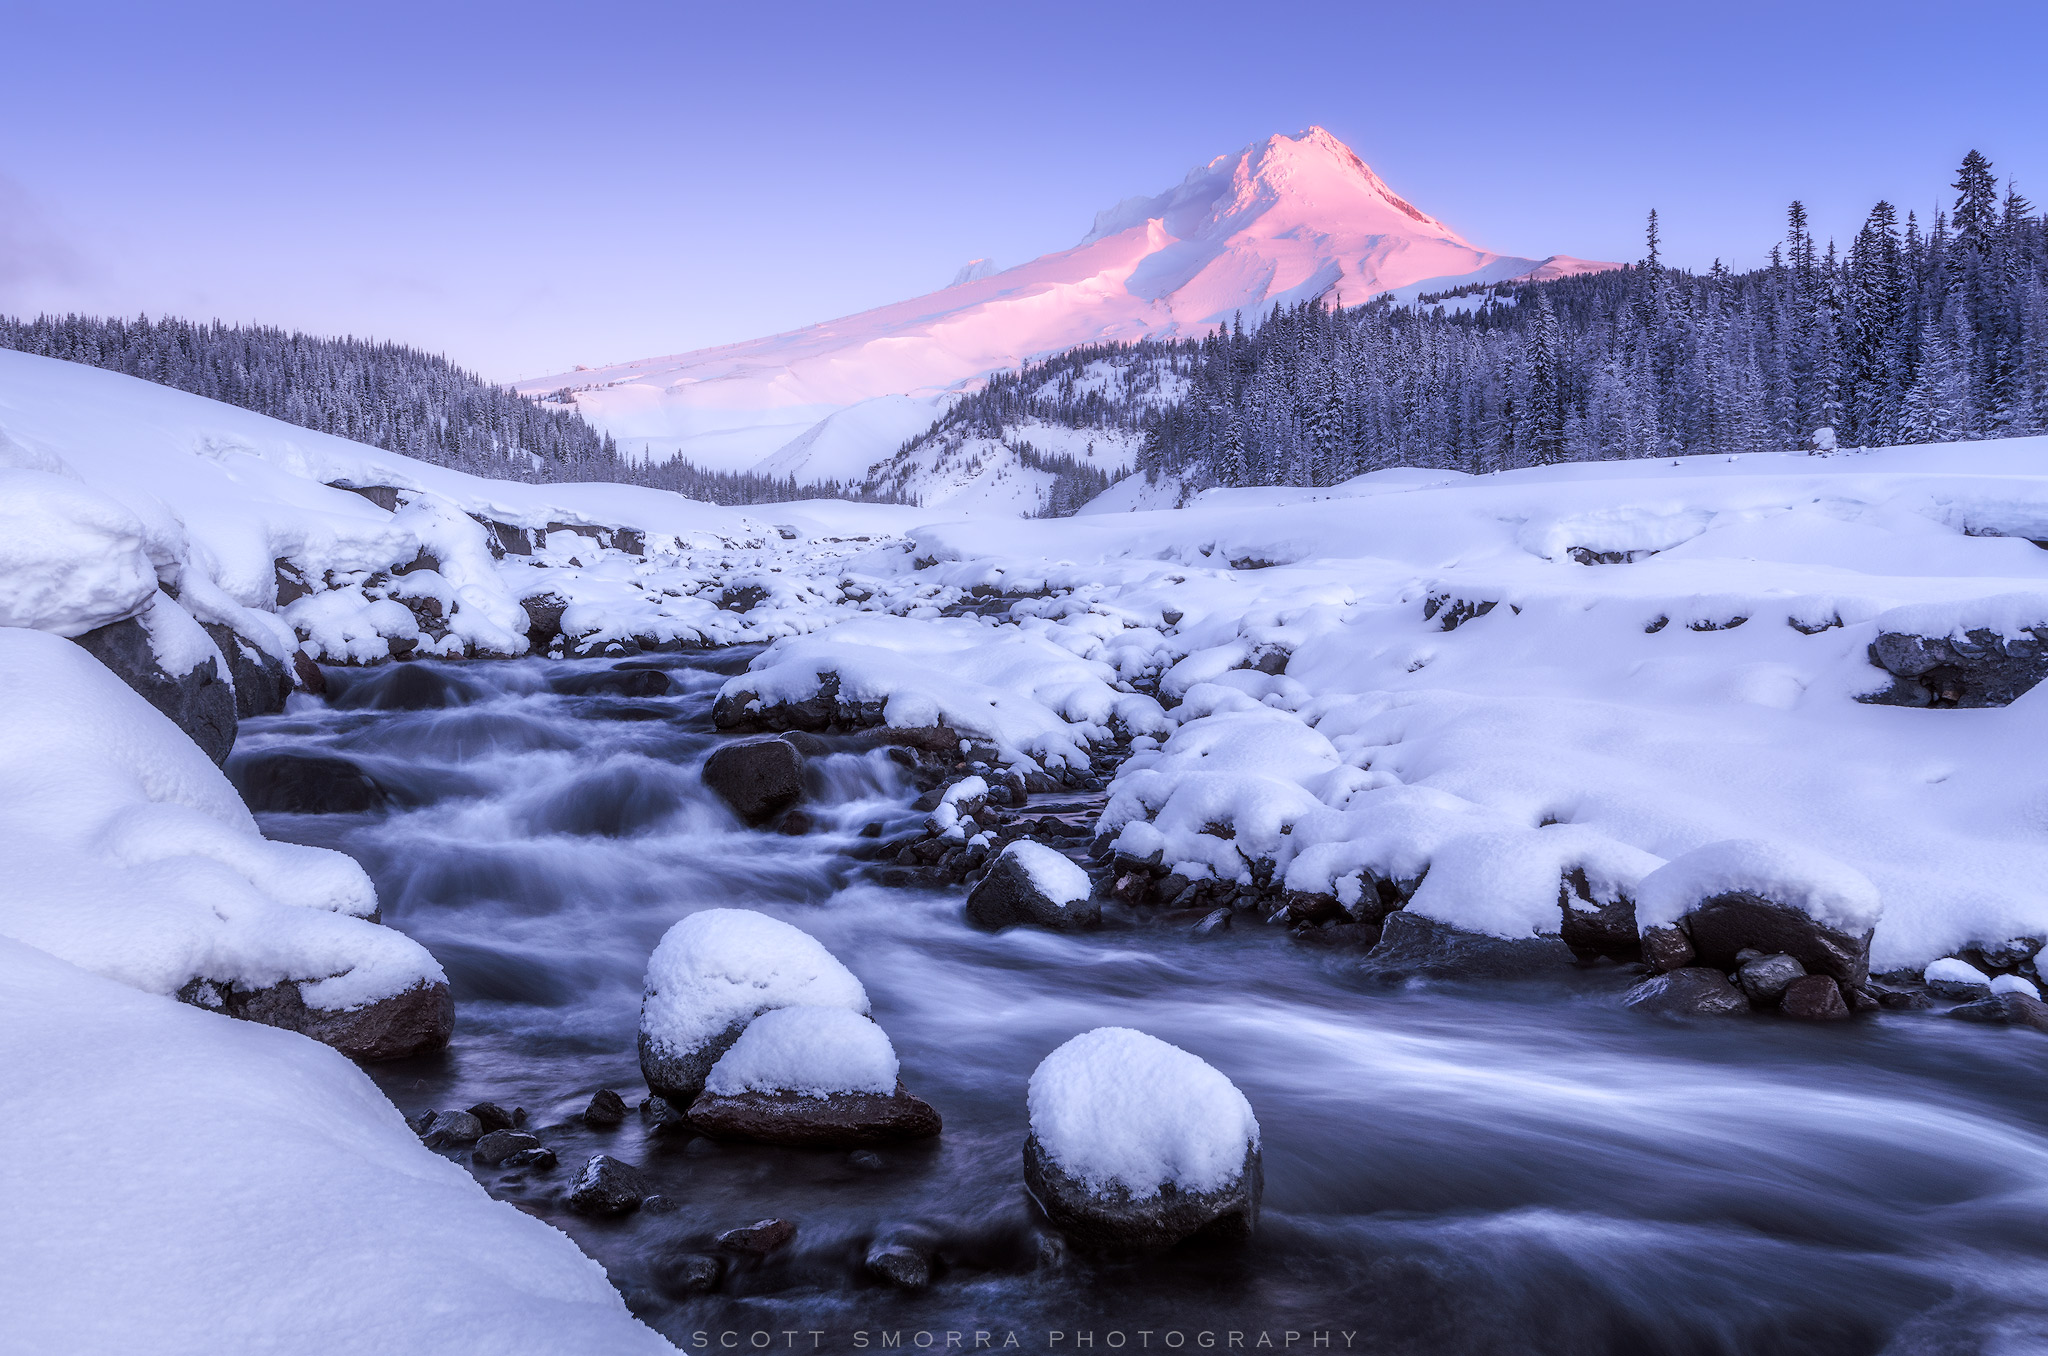 Oregon, Mt Hood, Wilderness, Cascades, Winter, snowfall, mountain, sunrise, alpenglow, white, river, snowshoe, photo